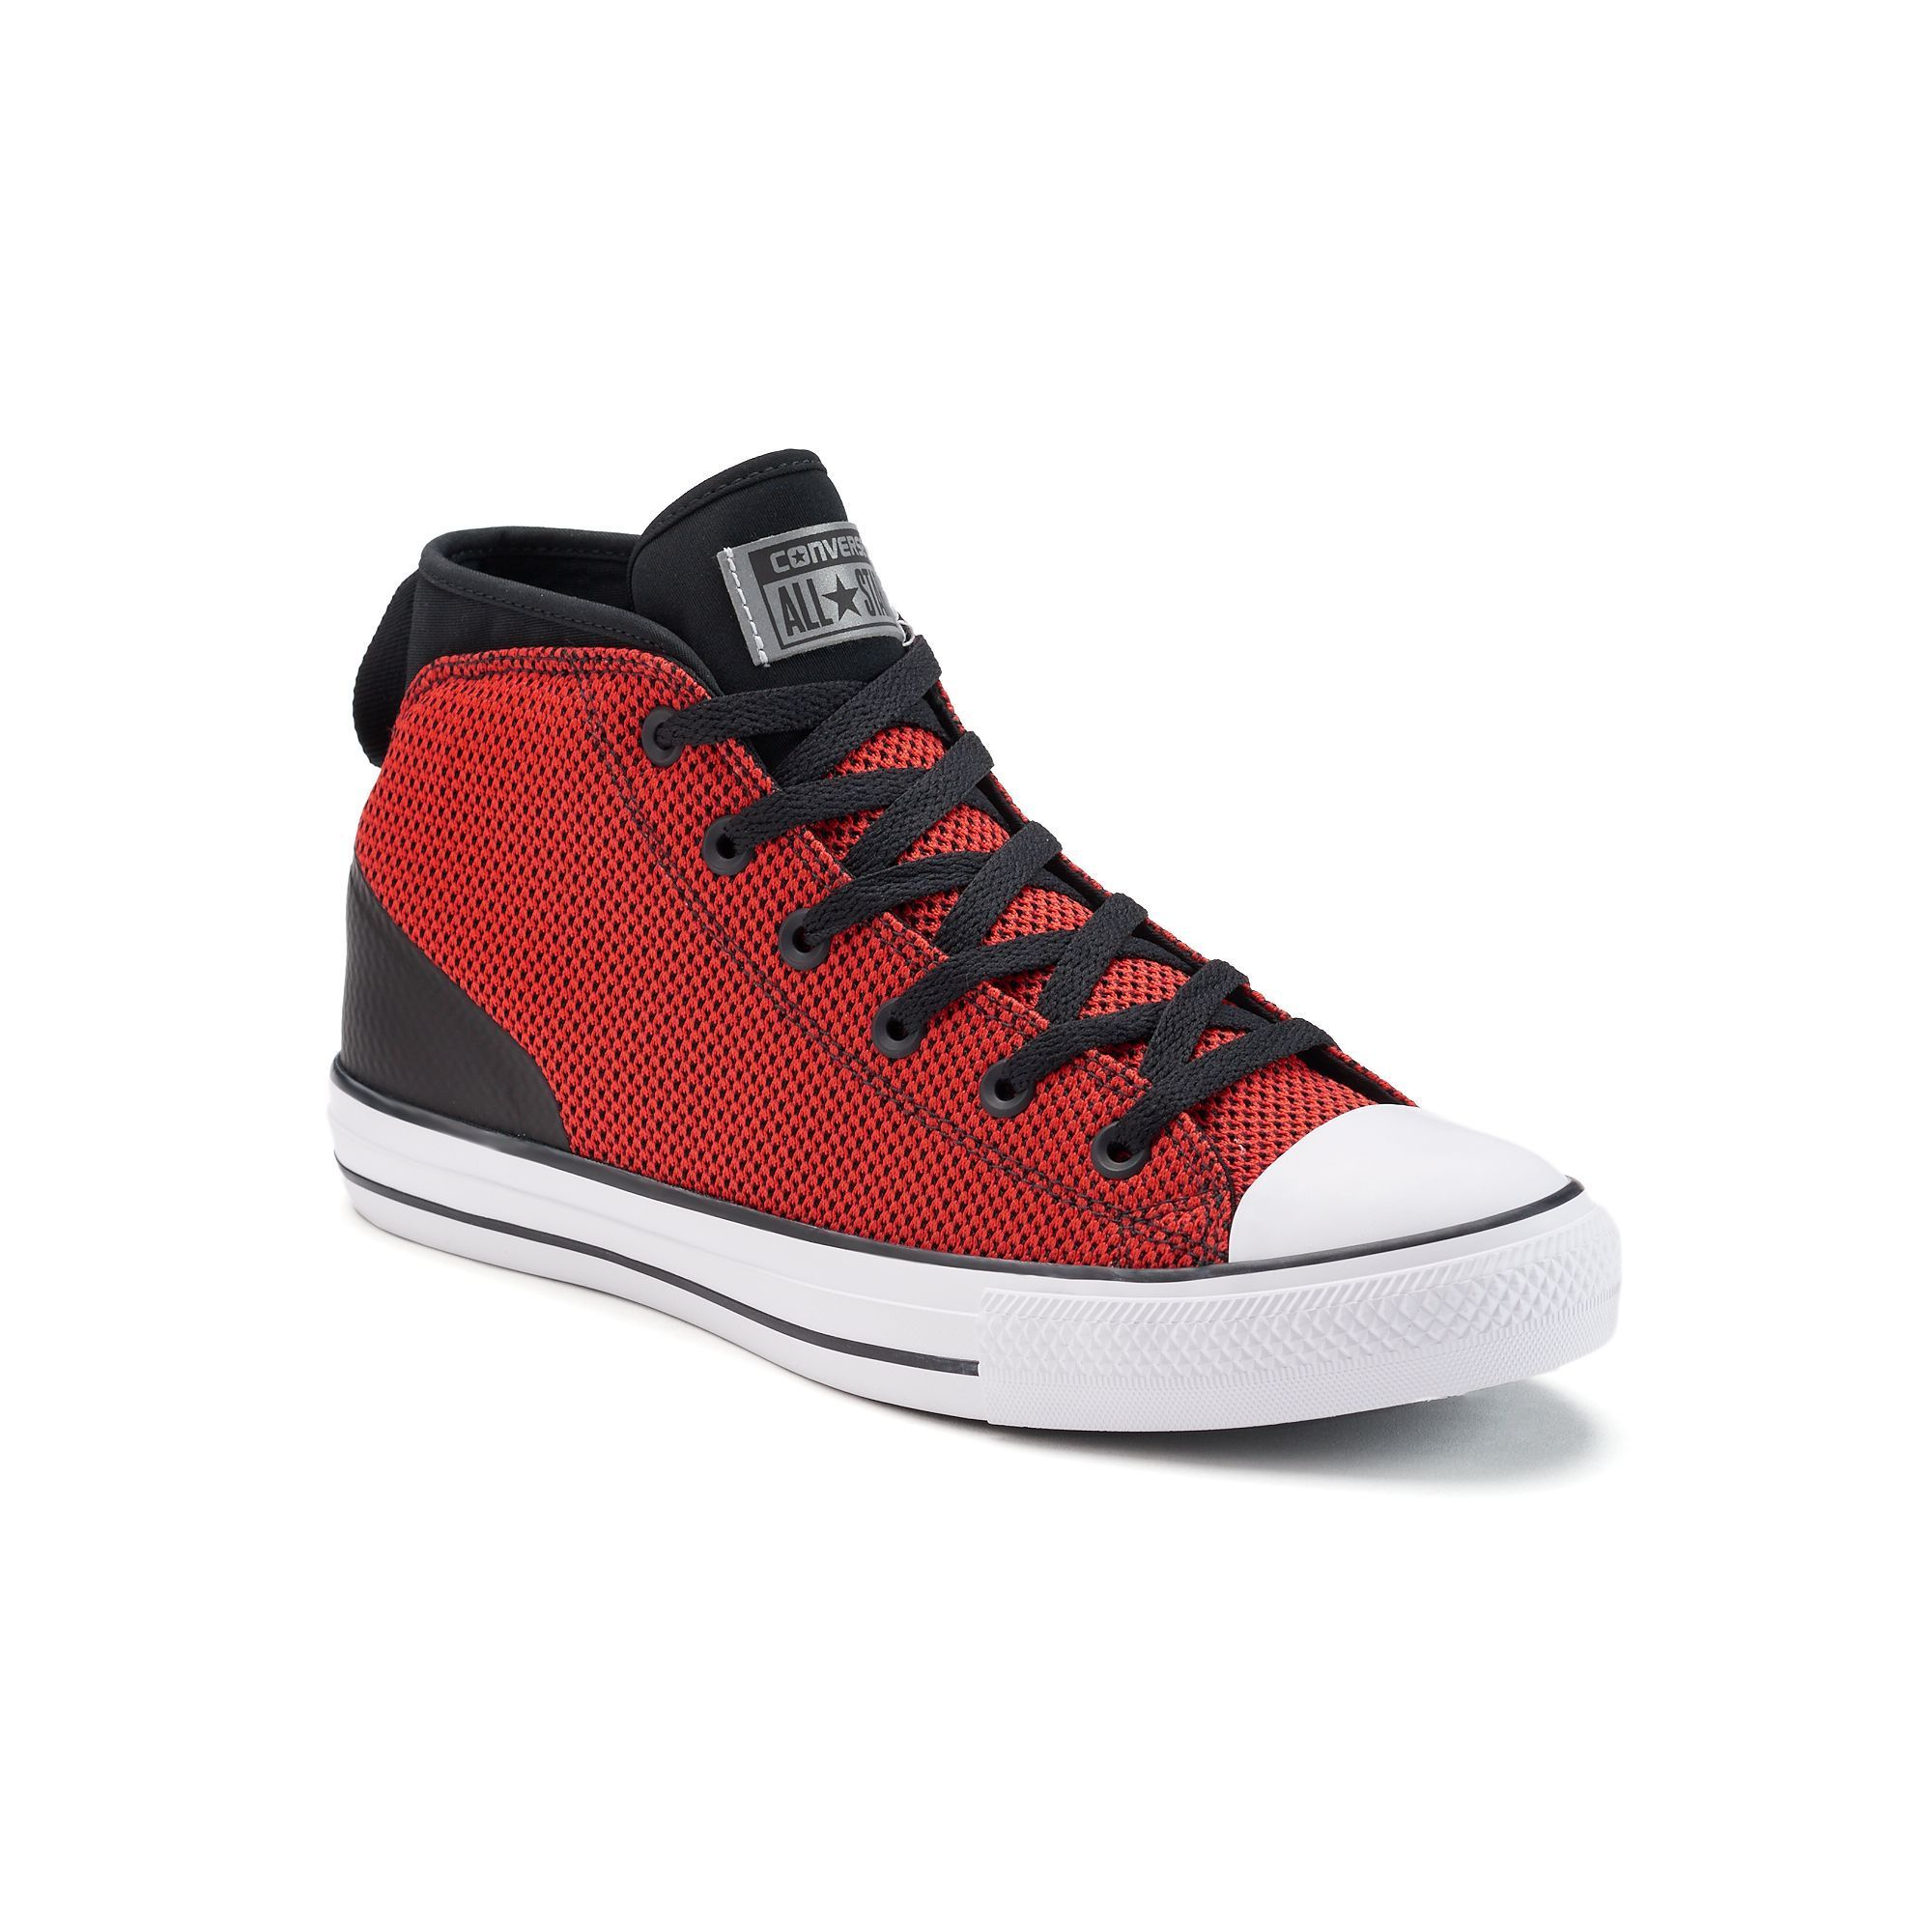 c91799d7c4a10 wholesale converse all star mens size 11 736de dca6d